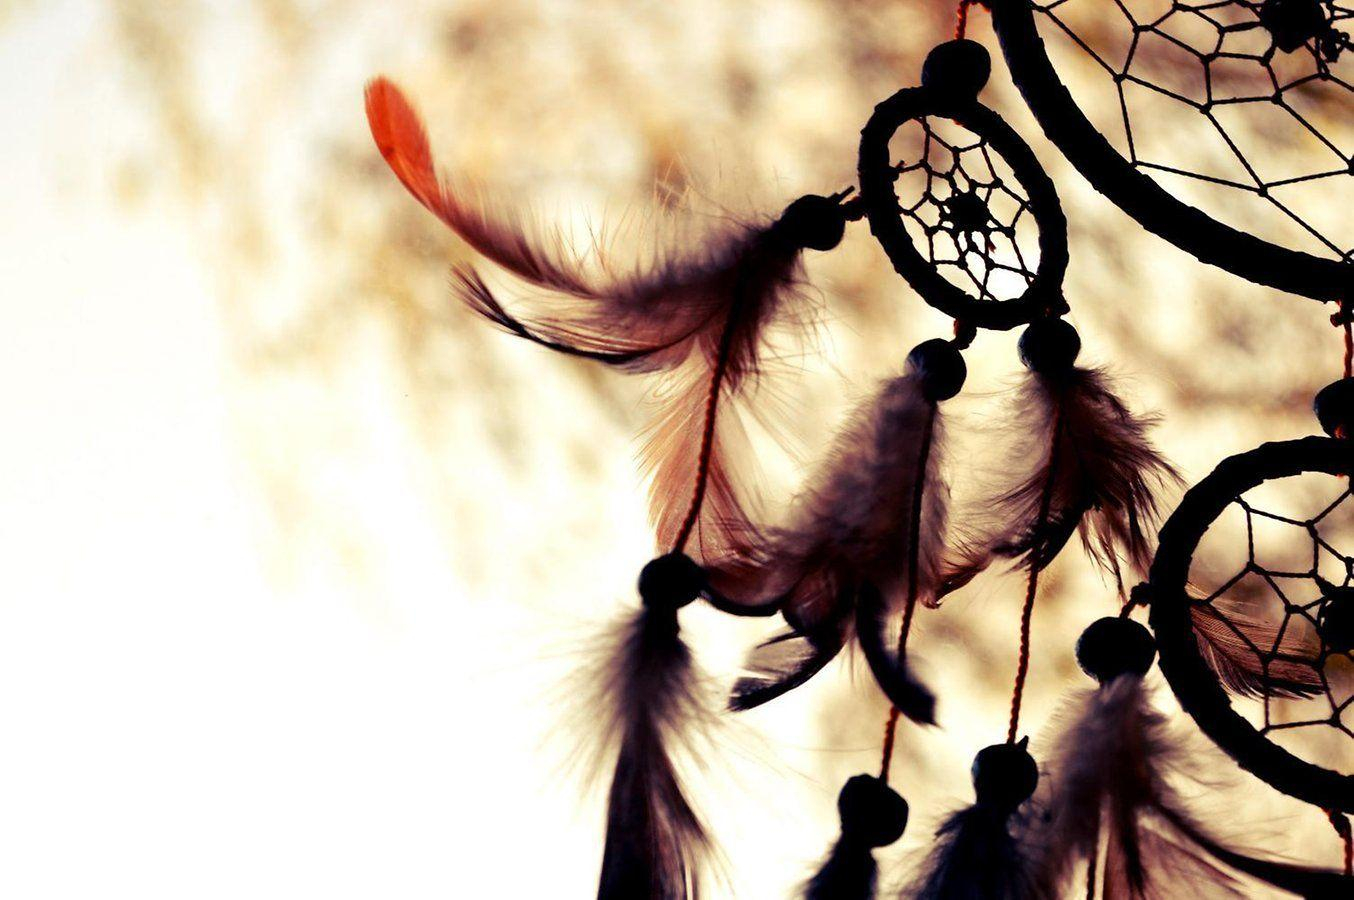 Top Dreamcatcher HD Wallpapers – Top Pics for PC & Mac, Laptop